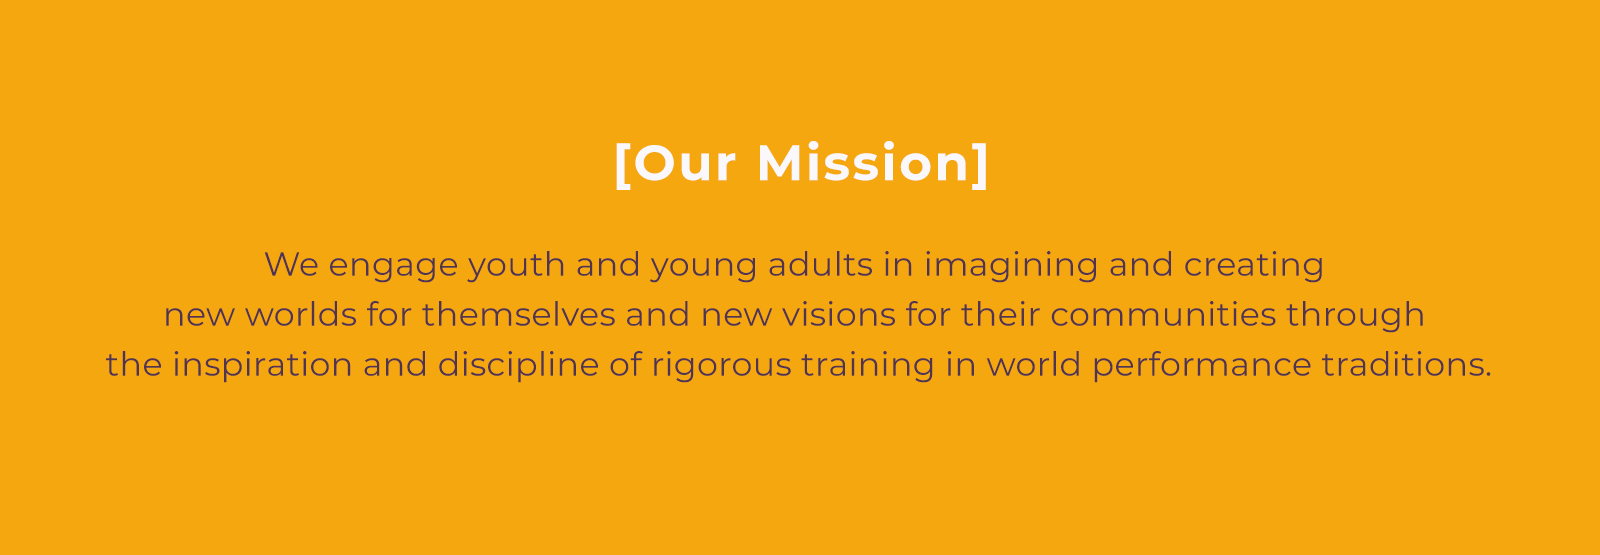 Our Mission: We engage youth and young adults in imagining and creating new worlds for themselves and new visions for their communities through the inspiration and discipline of rigorous training in world performance traditions.